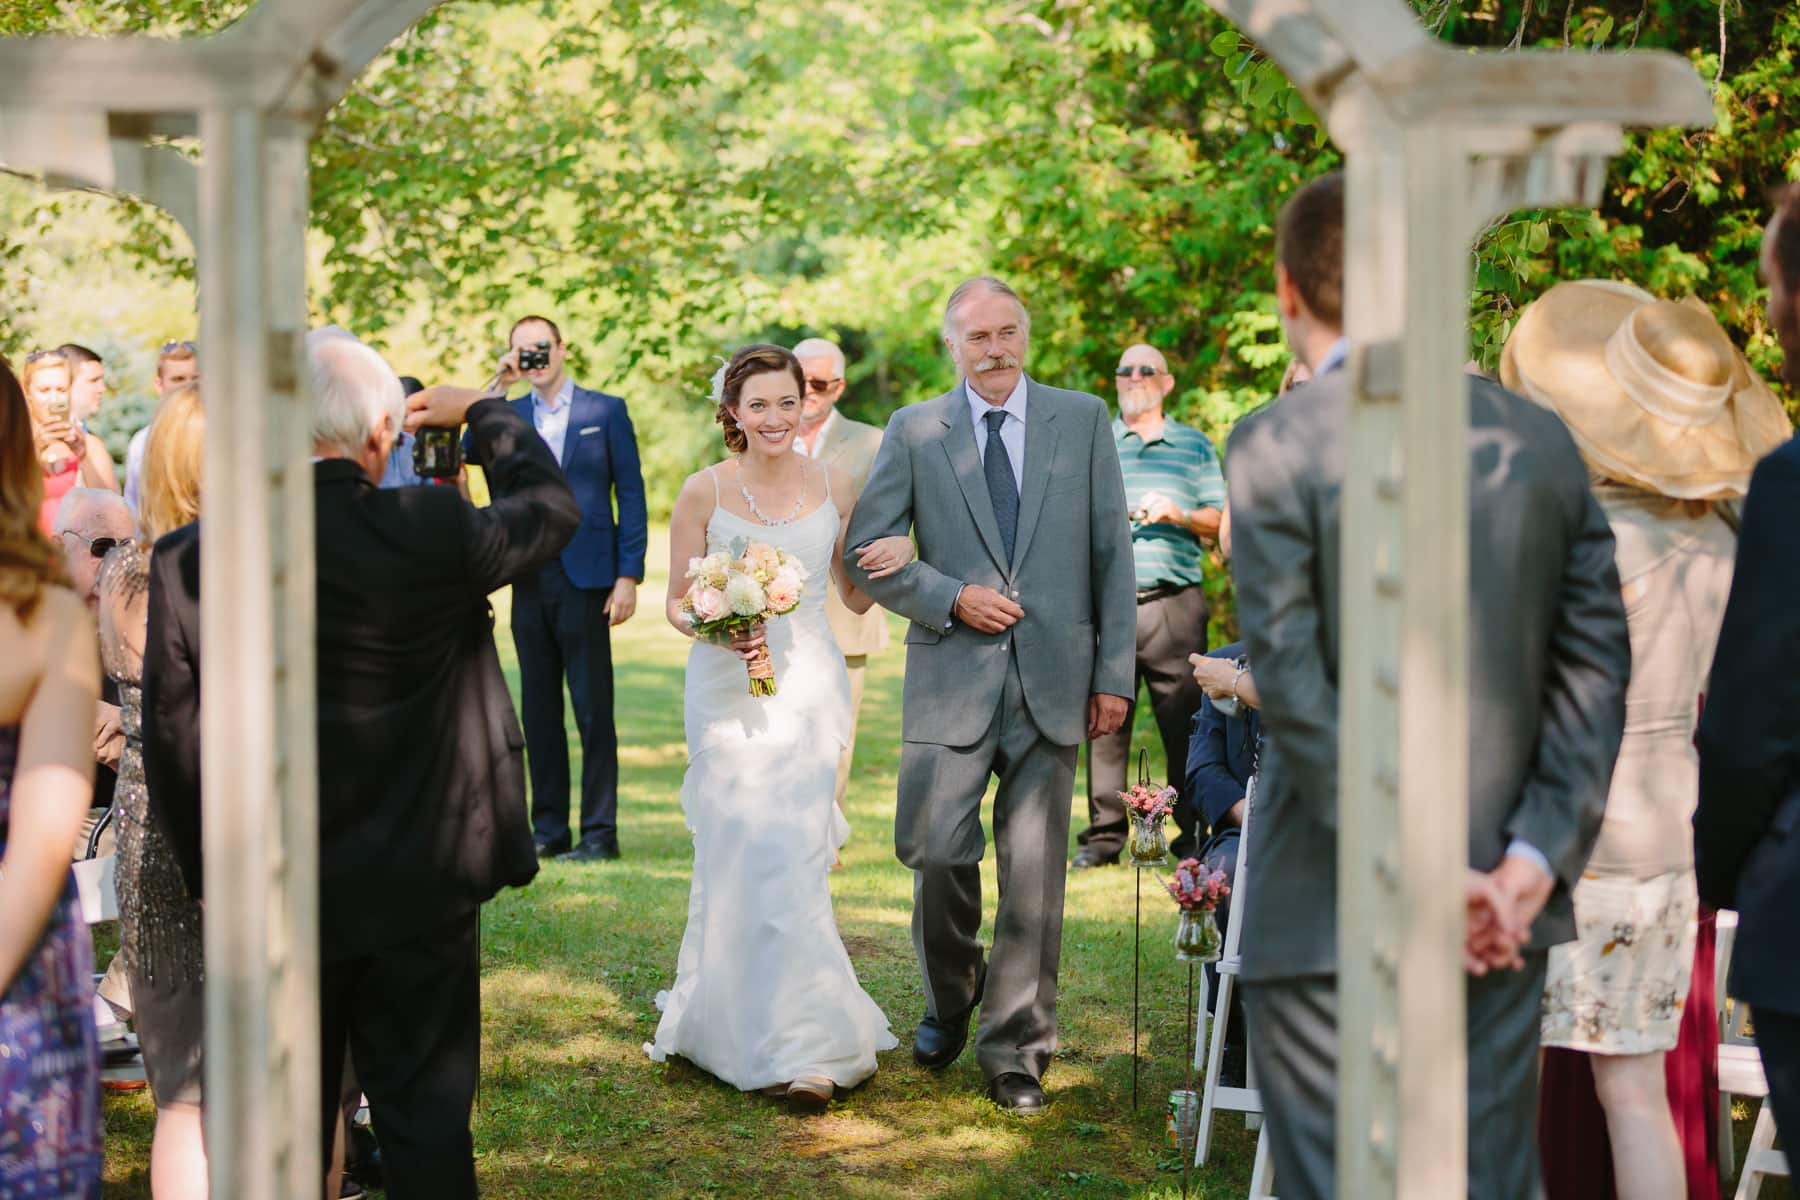 Bride is walked down aisle by moustached father in these outdoor backyard wedding photos.